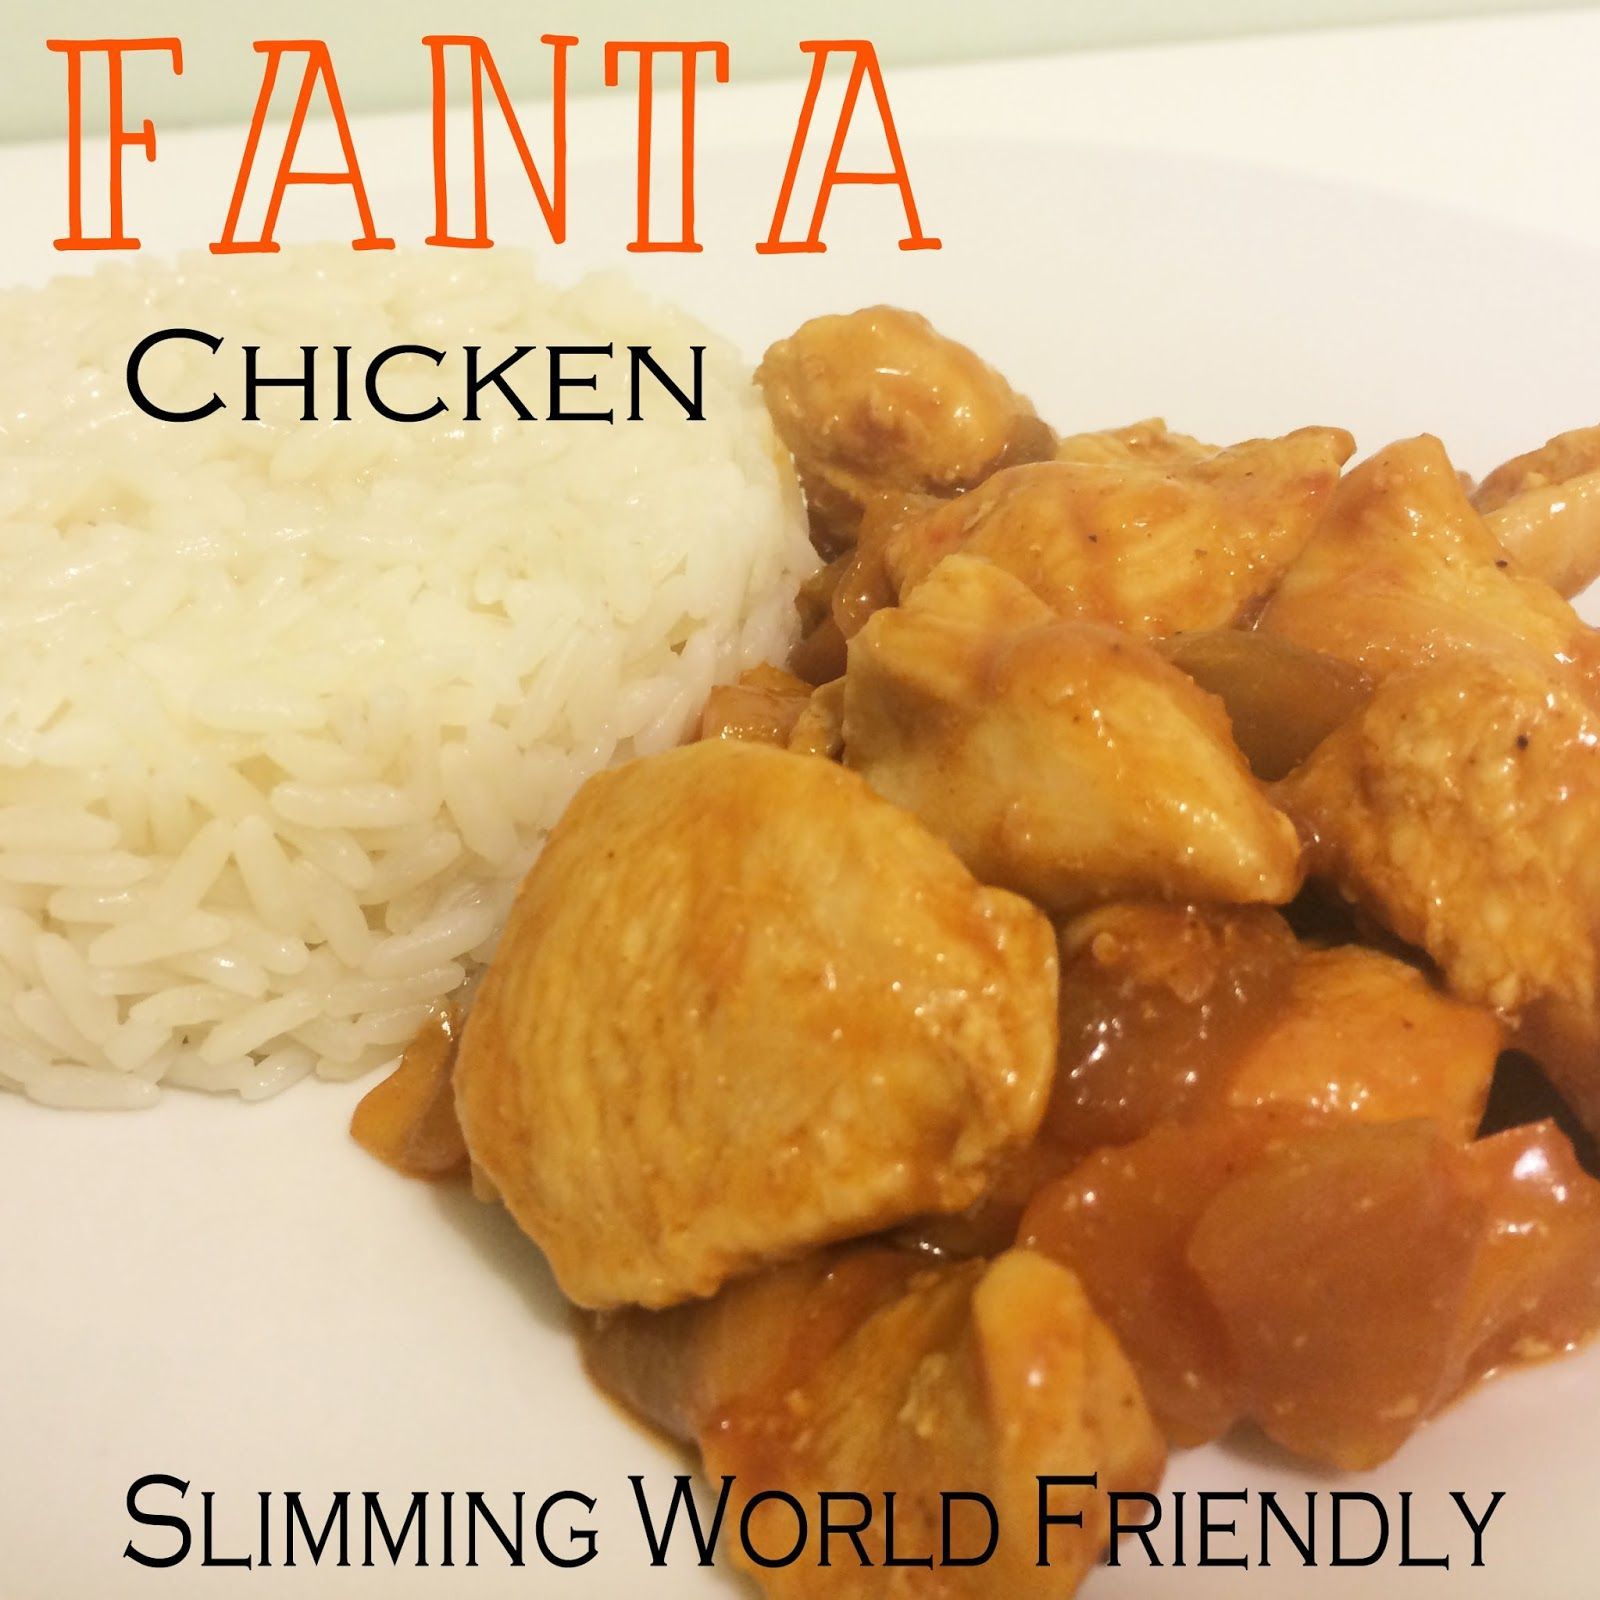 Slimming World Syn Free Dinner Meal Idea Fanta Chicken